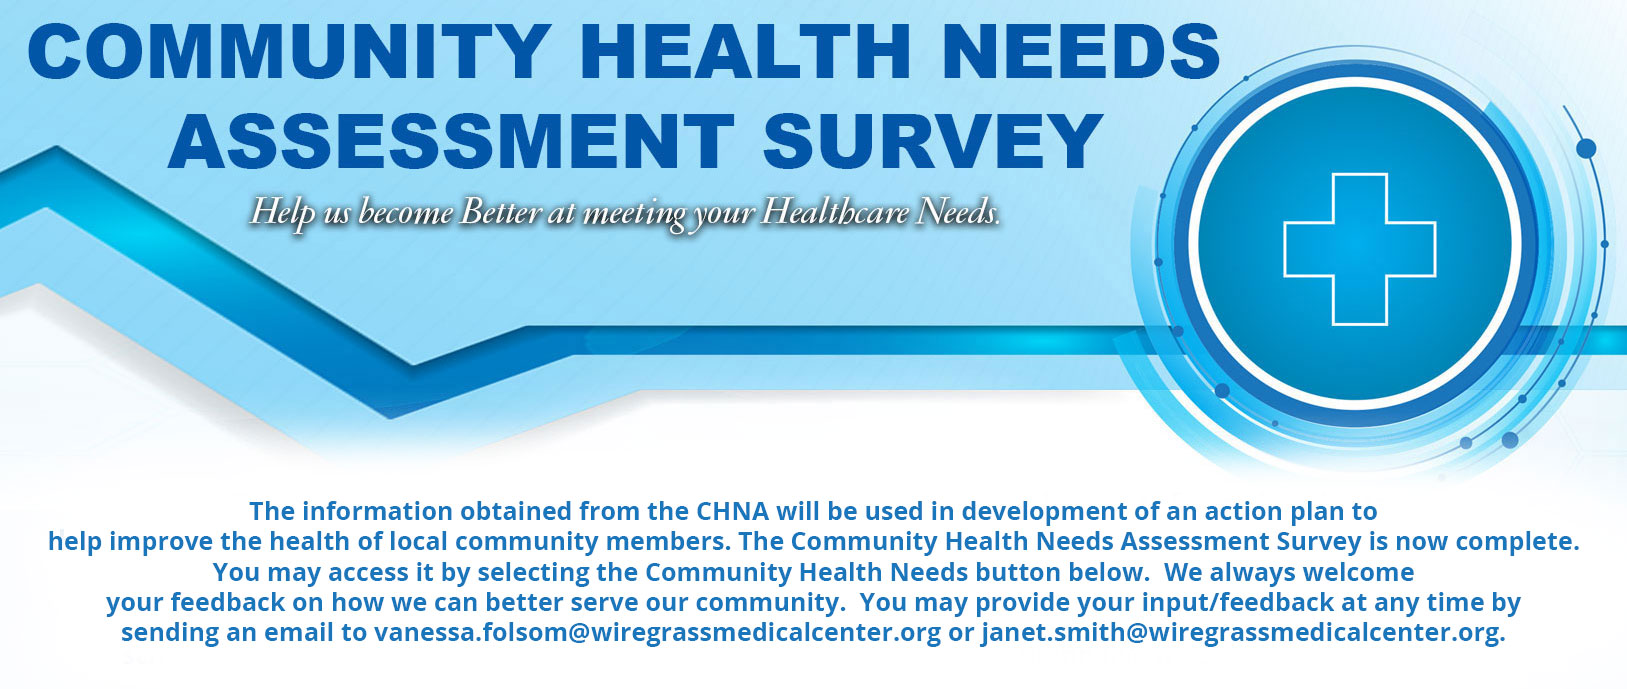 The information obtained from the CHNA will be used in the development of an action plan to help improve the health of local community members. The Community Health Needs Assessment Survey is now complete.  You may access it by selecting the Community Health Needs button below.  We always welcome your feedback on how we can better serve our community. You may provide your input/feedback at any time by sending an email to vanessa.folsom@wiregrassmedicalcenter.org or jeff.brannon@wiregrassmedicalcenter.org.